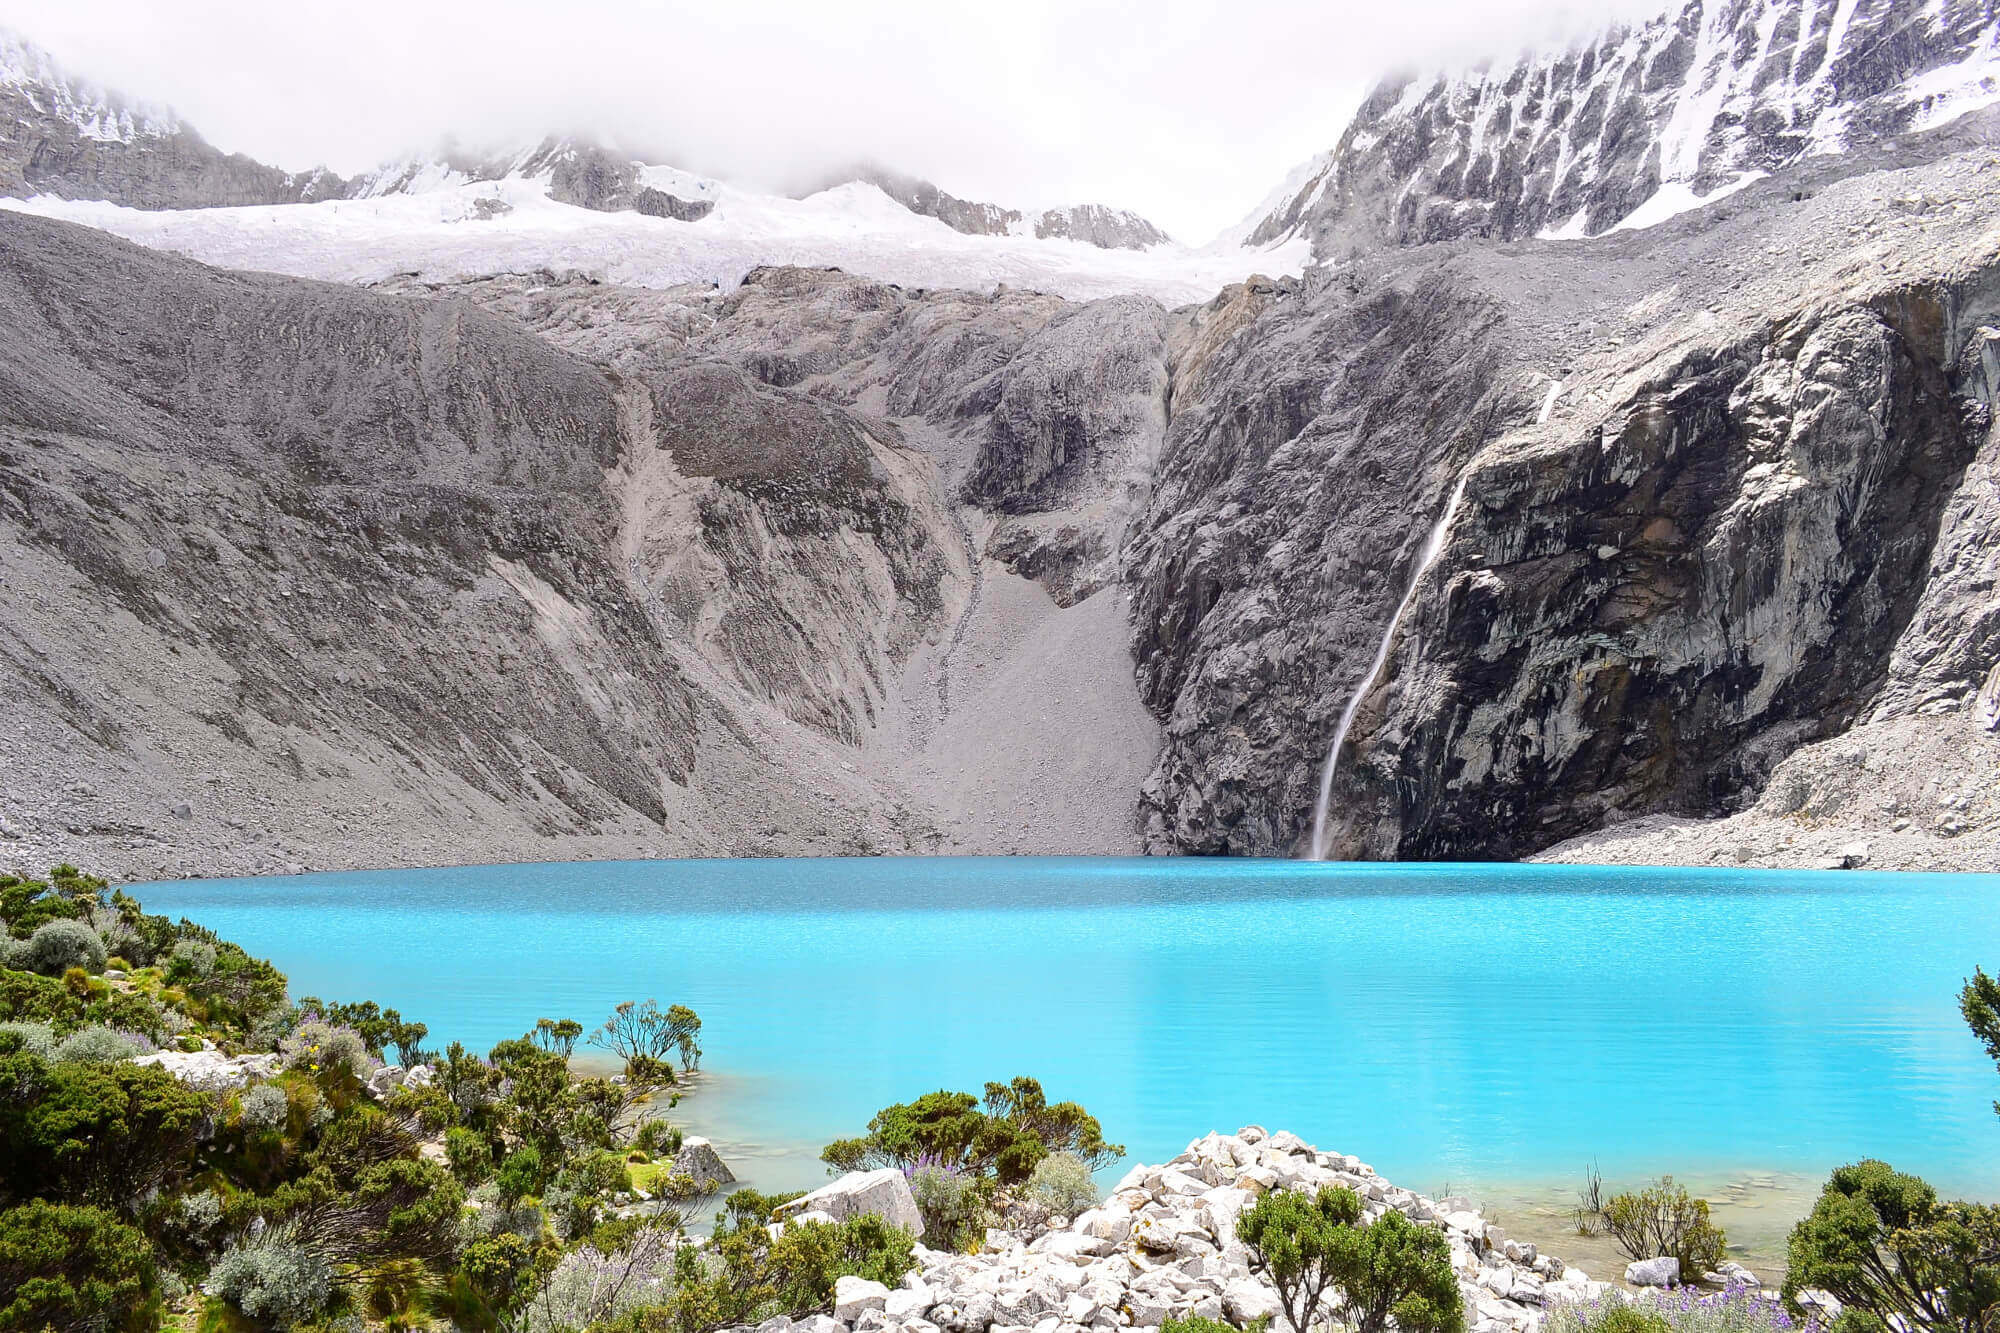 Stunning glacial lake Laguna 69 sits at a grueling 15,000 feet above sea level. The difficult hike is worth the view! Laguna 69 is outside of Huaraz, Peru in the Cordillera Blanca mountain range.